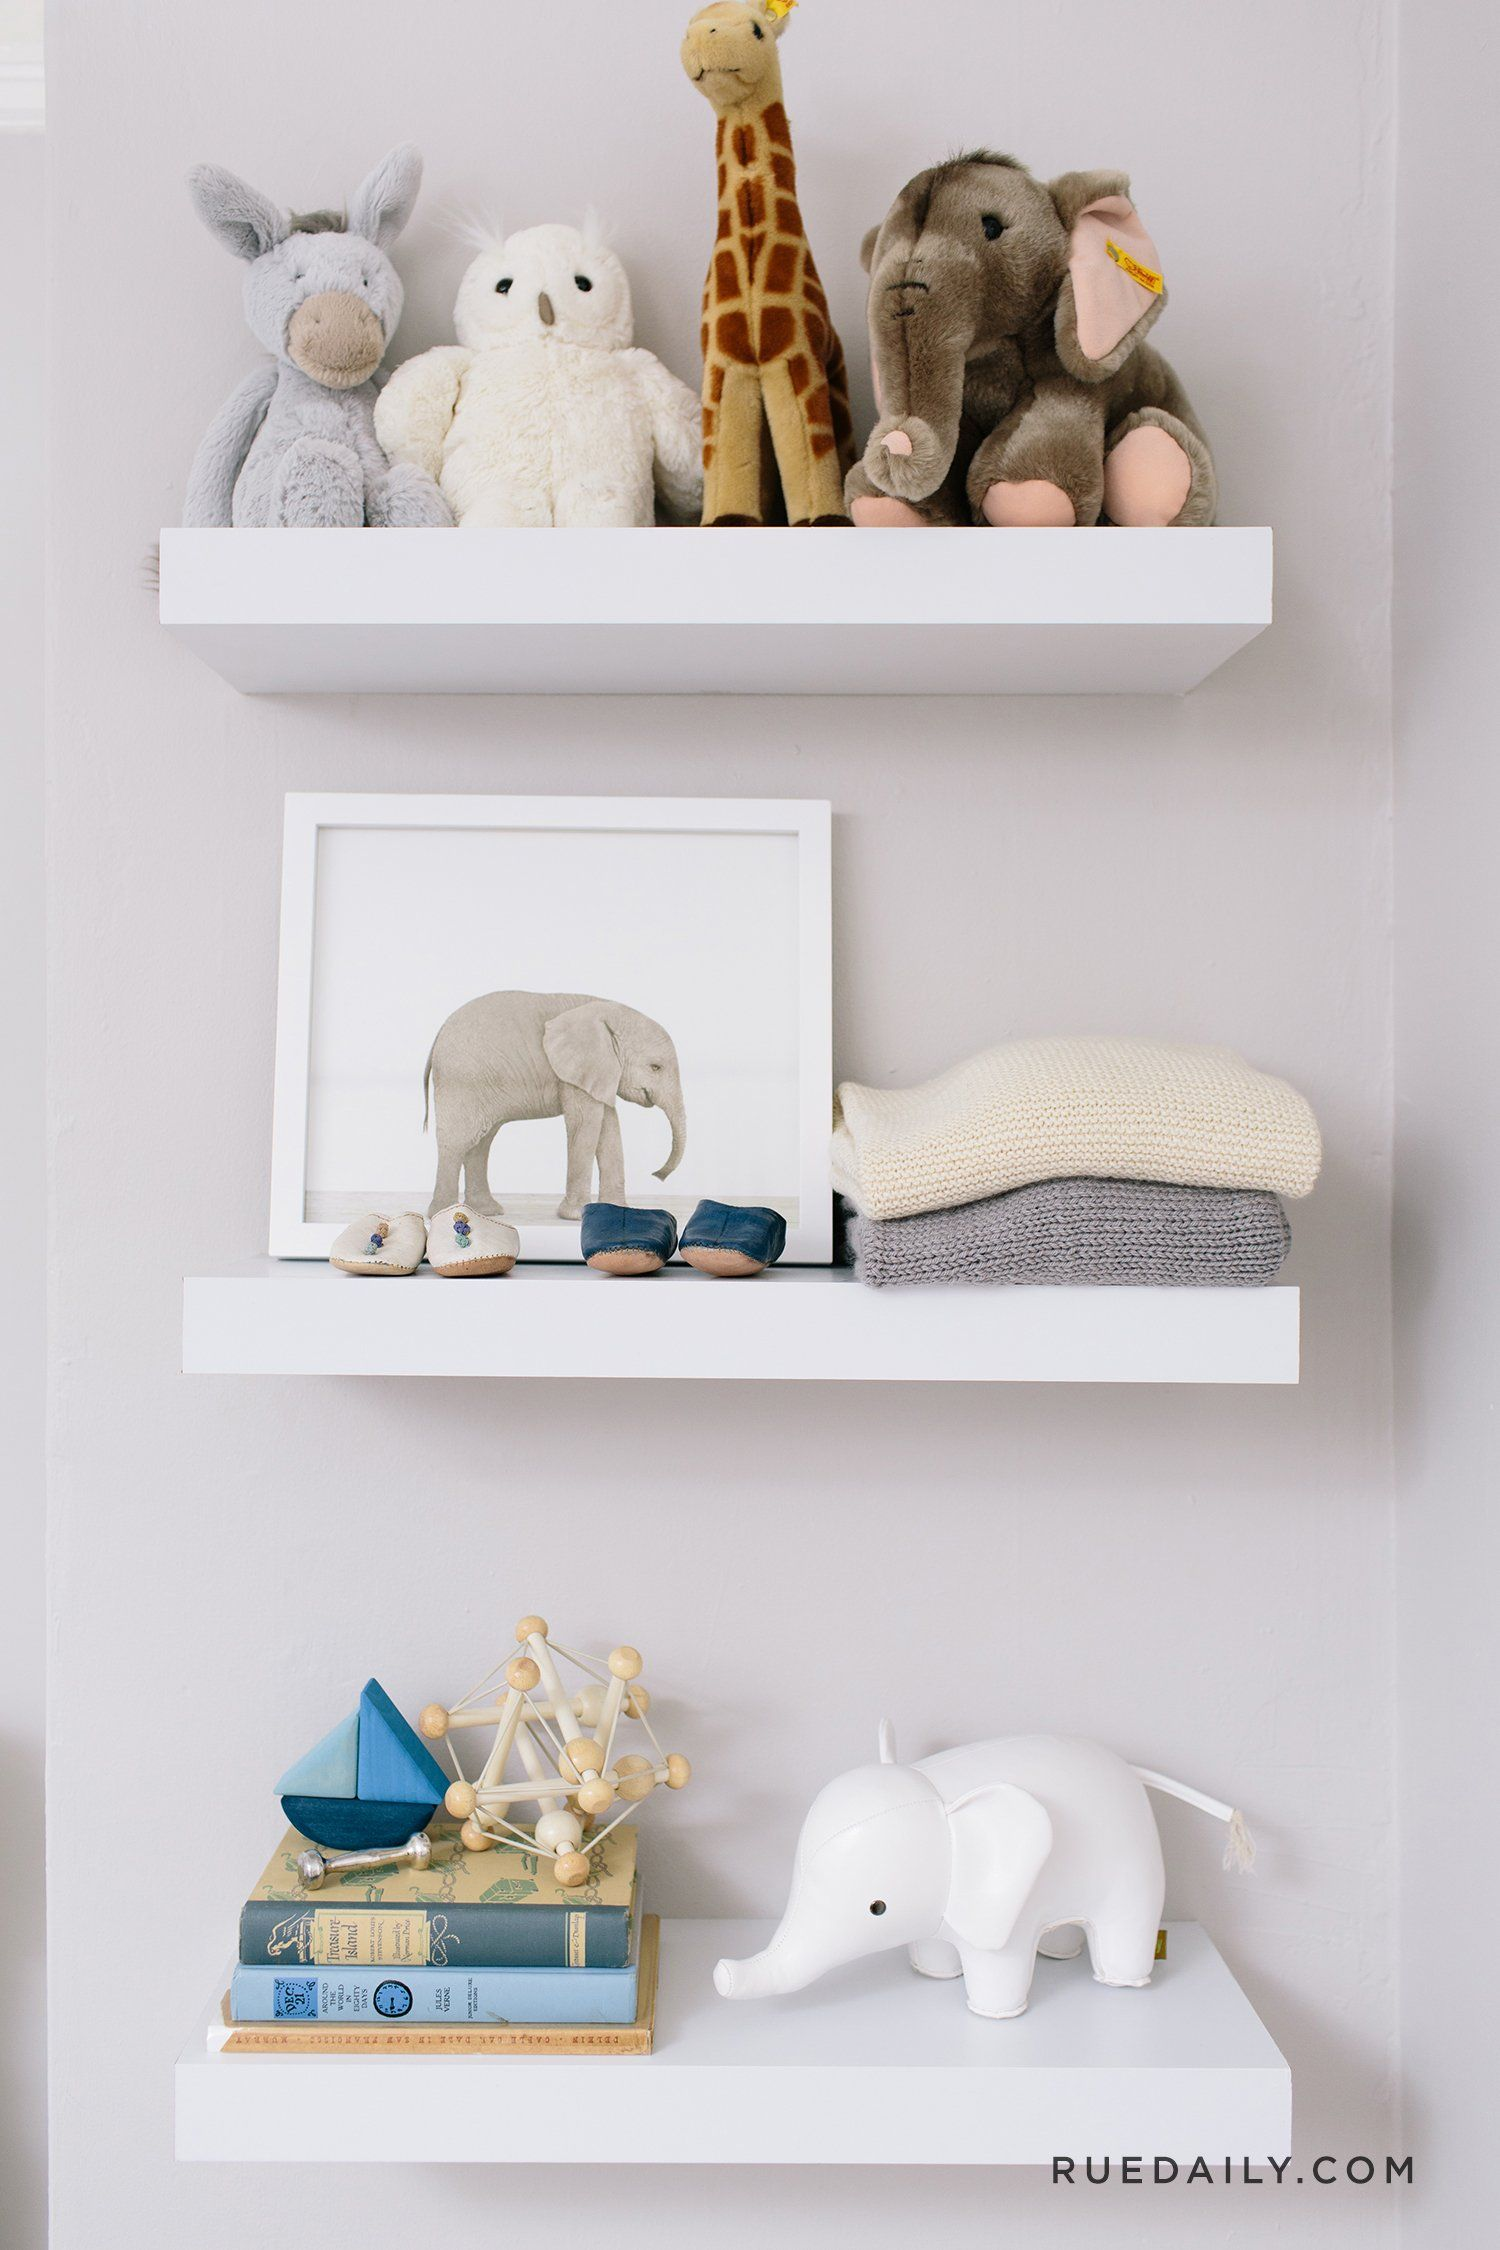 Nursery Wall Shelves Are Perfect Practical Decor Piece To Hold Toys Art Books Or Clothes In A Bedroom Bathroom Great Idea Kids Room